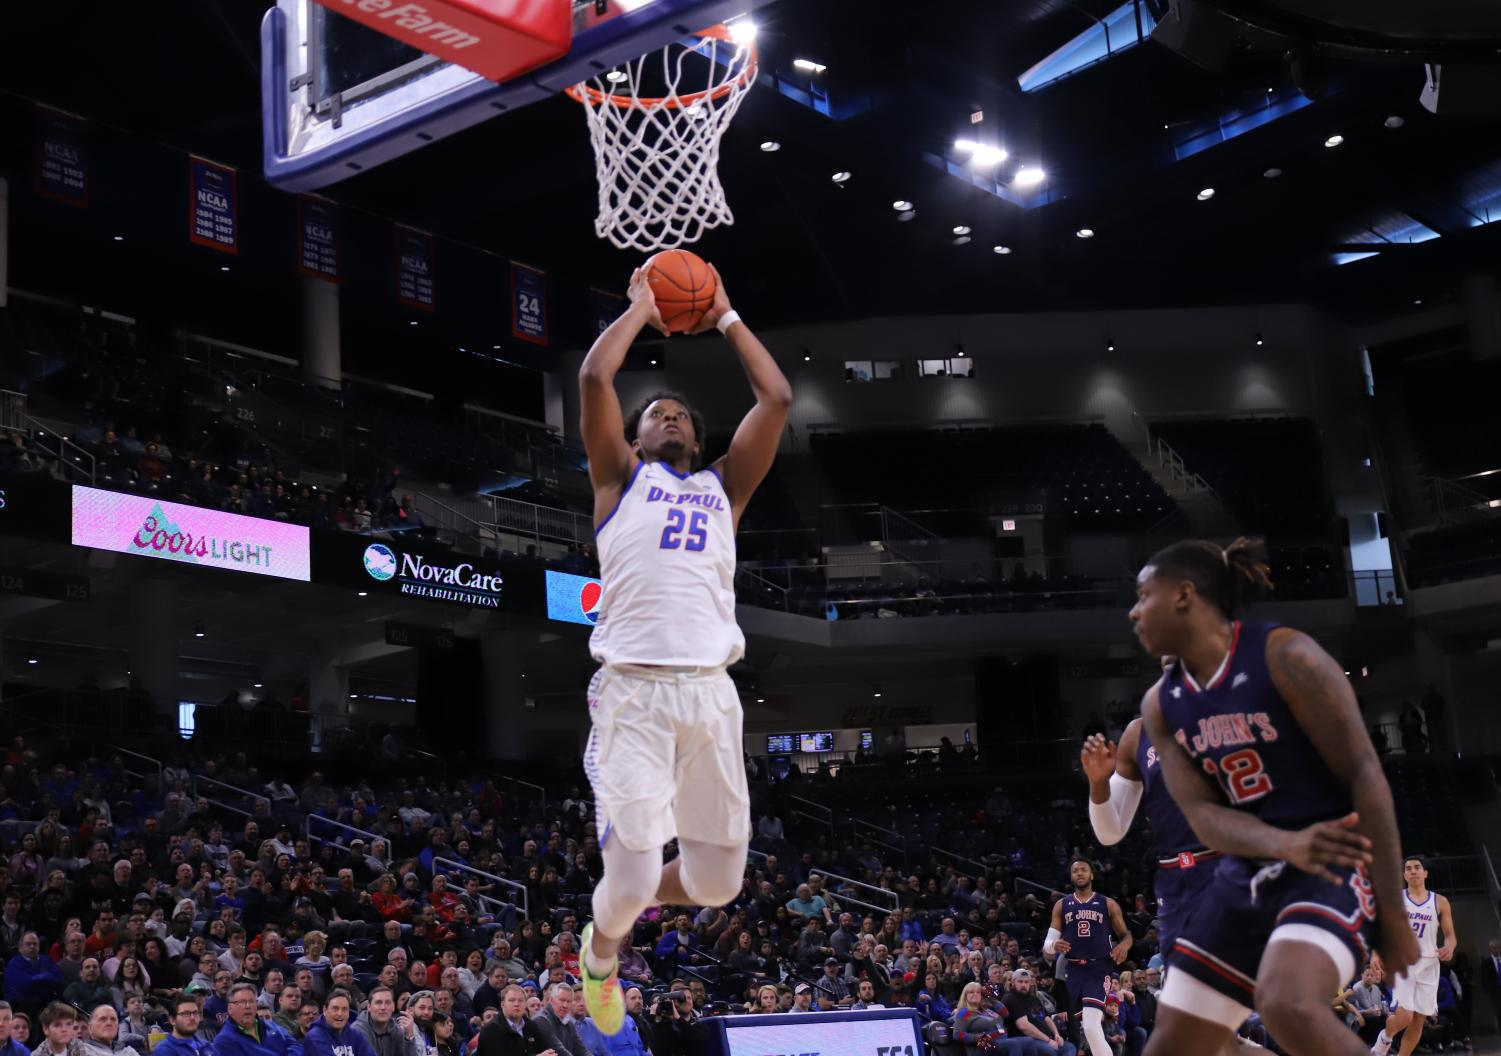 Senior+forward+Femi+Olujobi+rises+for+a+dunk+during+the+first+half+of+DePauls+win+over+St.+Johns+Sunday+afternoon+at+Wintrust+Arena.+Olujobi+finished+with+23+points+and+10+rebounds.++Alexa+Sandler+%7C+The+DePaulia